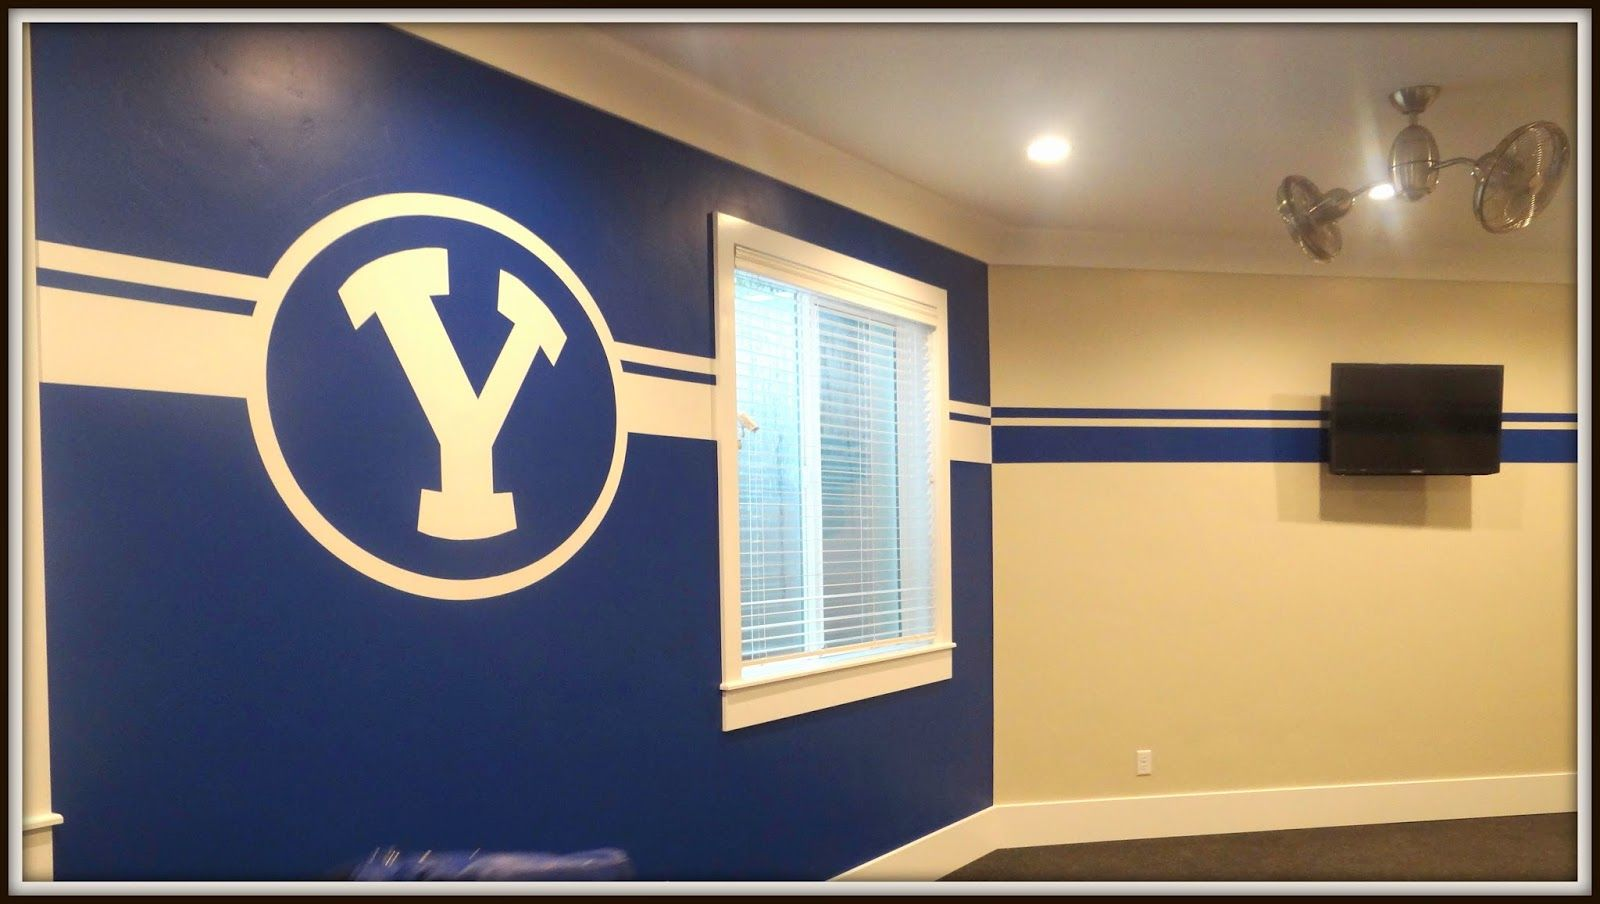 Byu Painted Wall Google Search House Yard Hunter Room Wall Painting